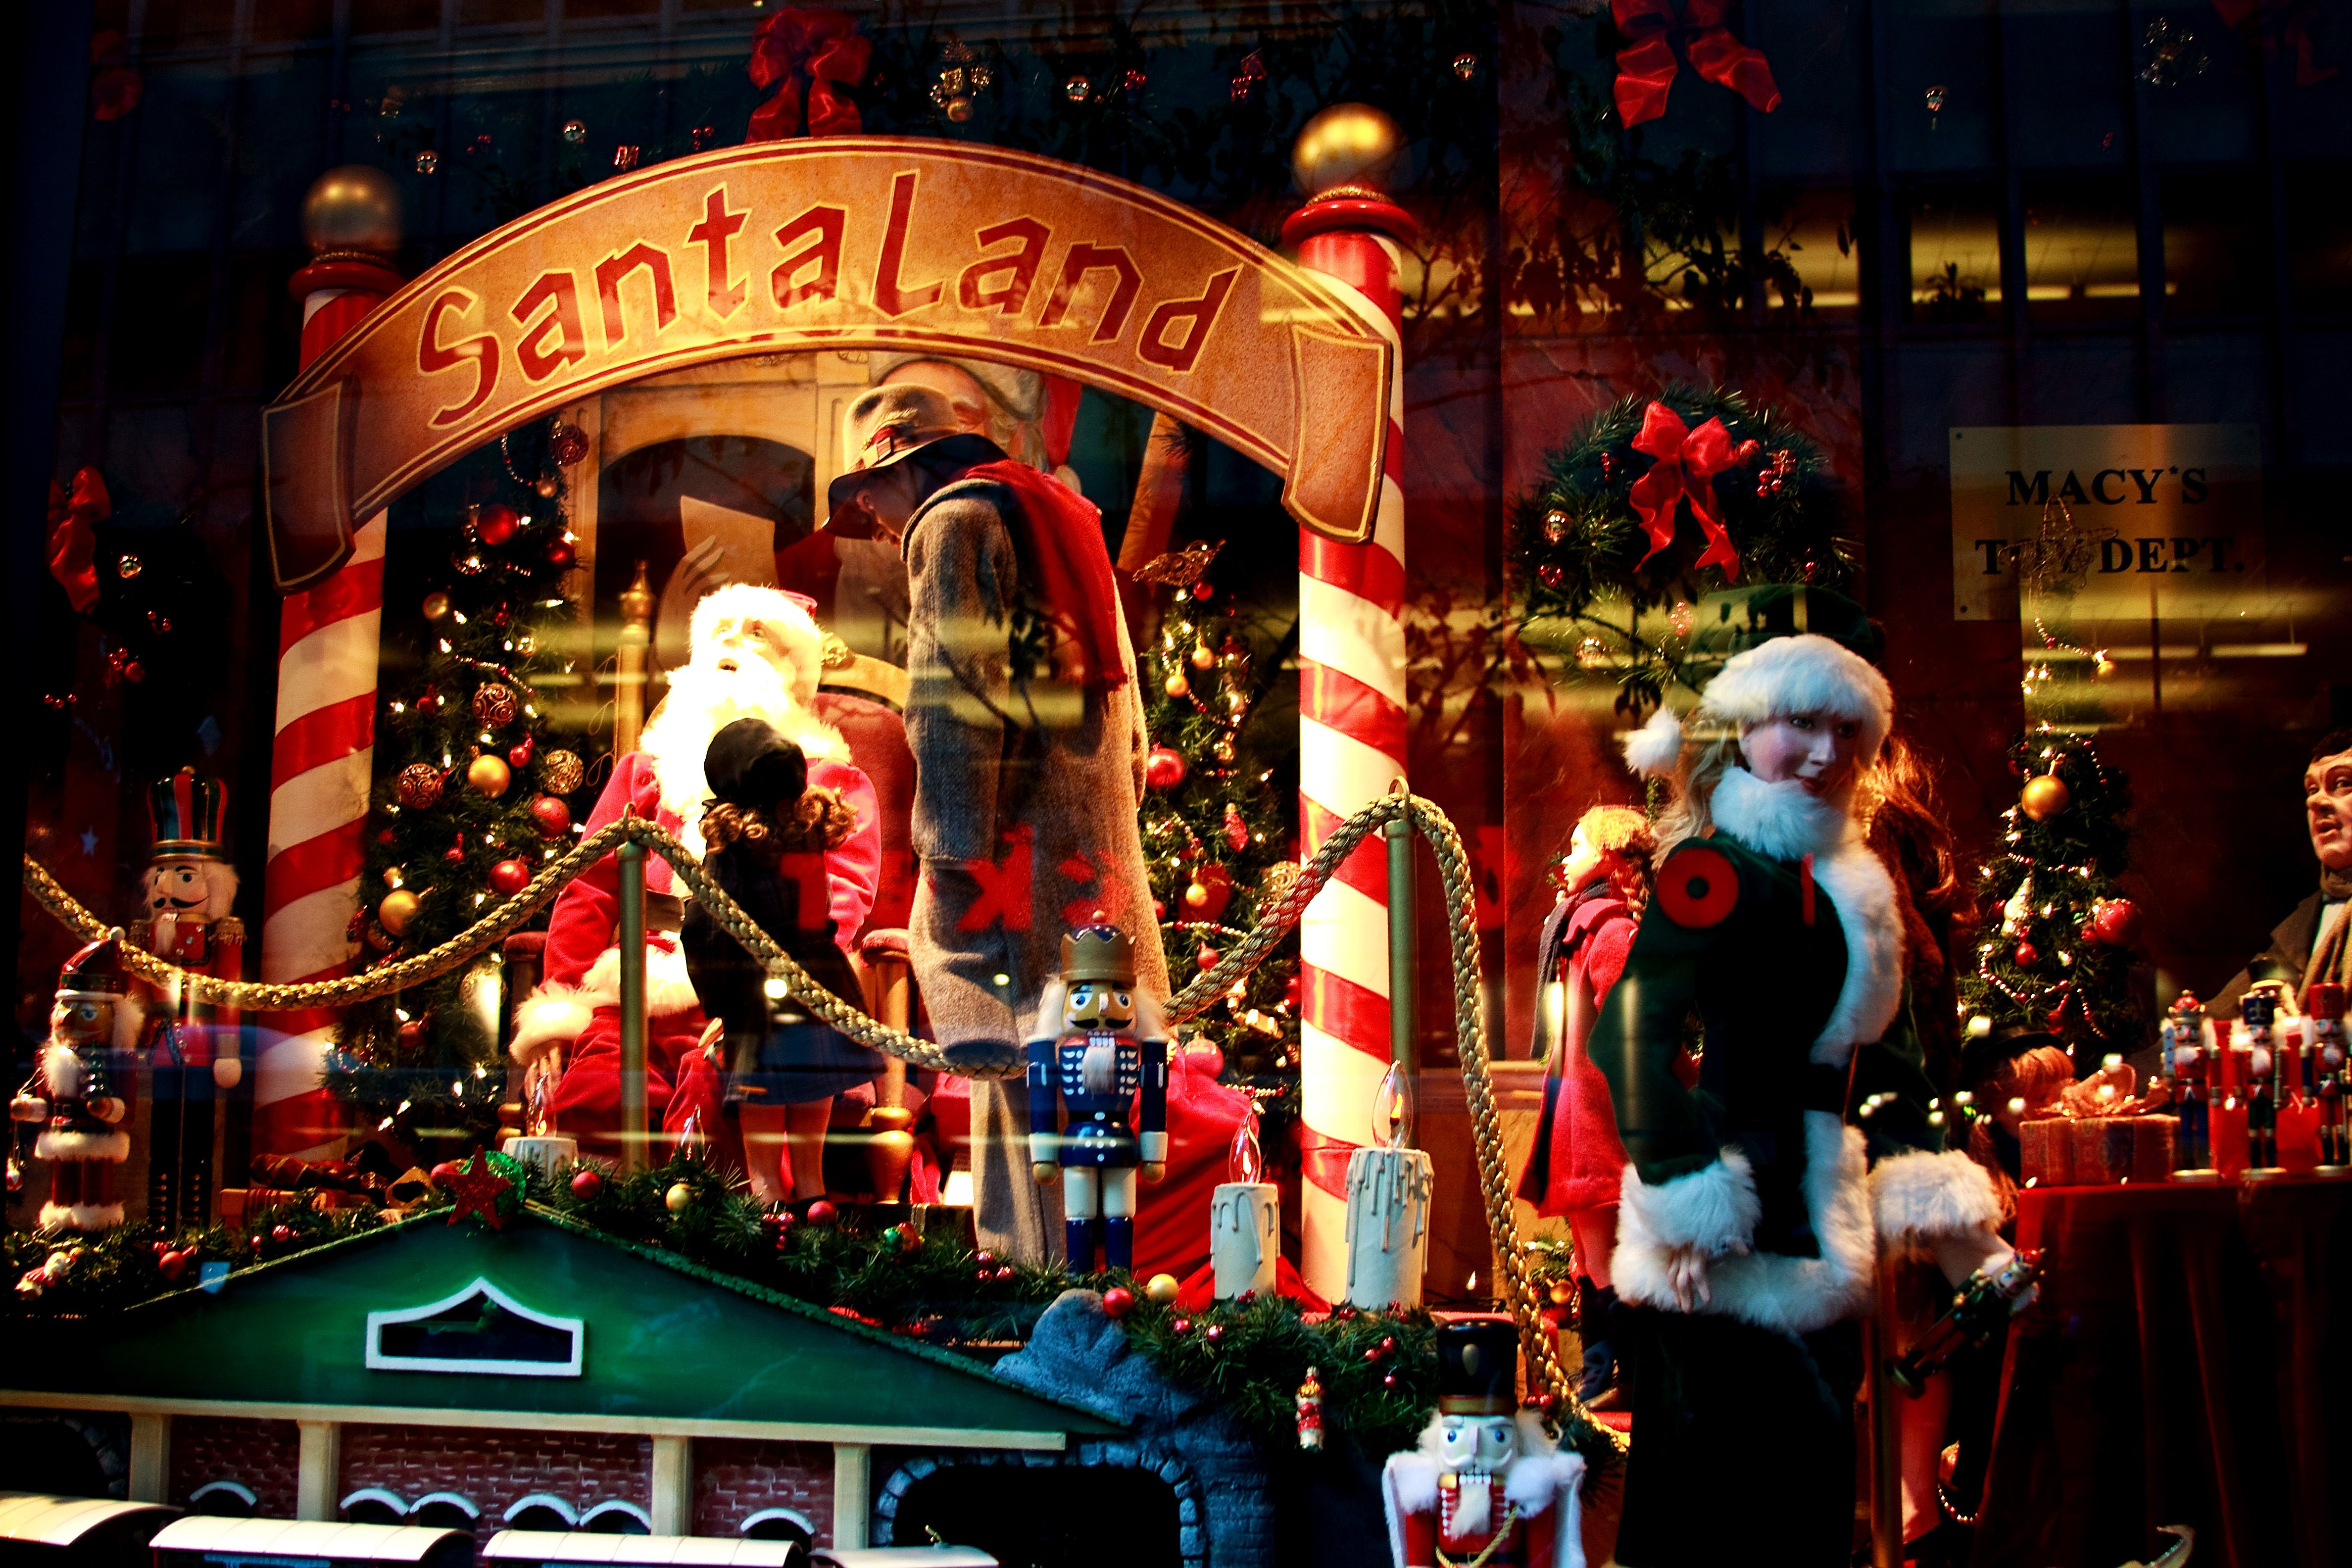 The Christmas Windows At Macy's In New York